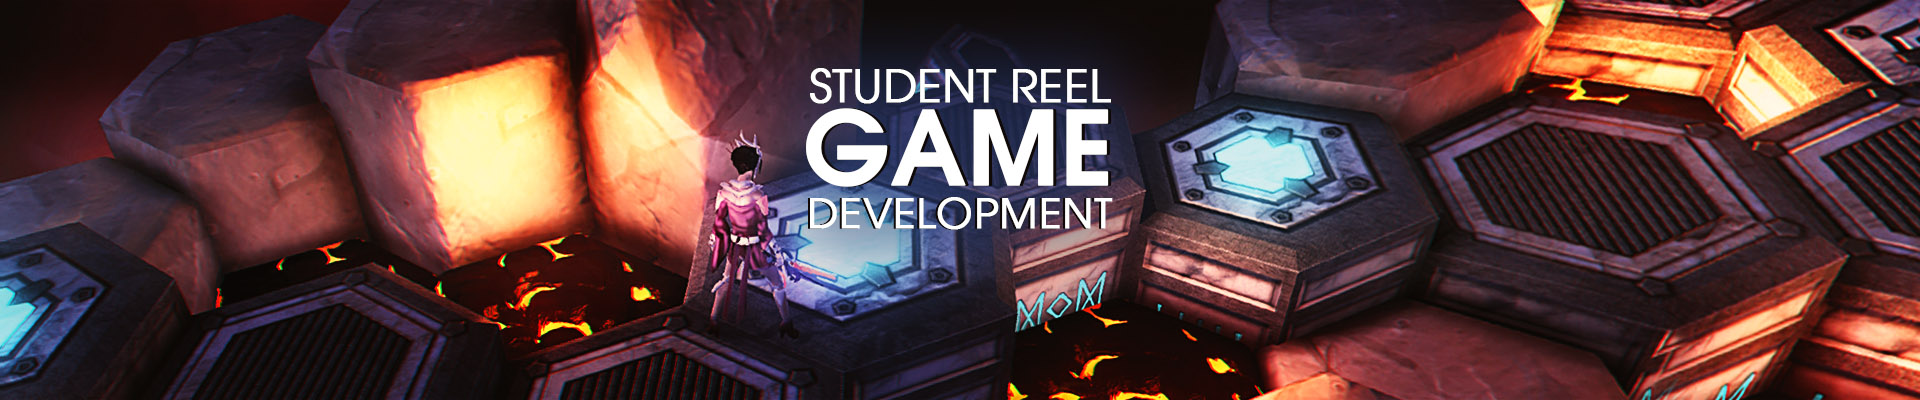 event_horizon_school_game_developmet_student_reel